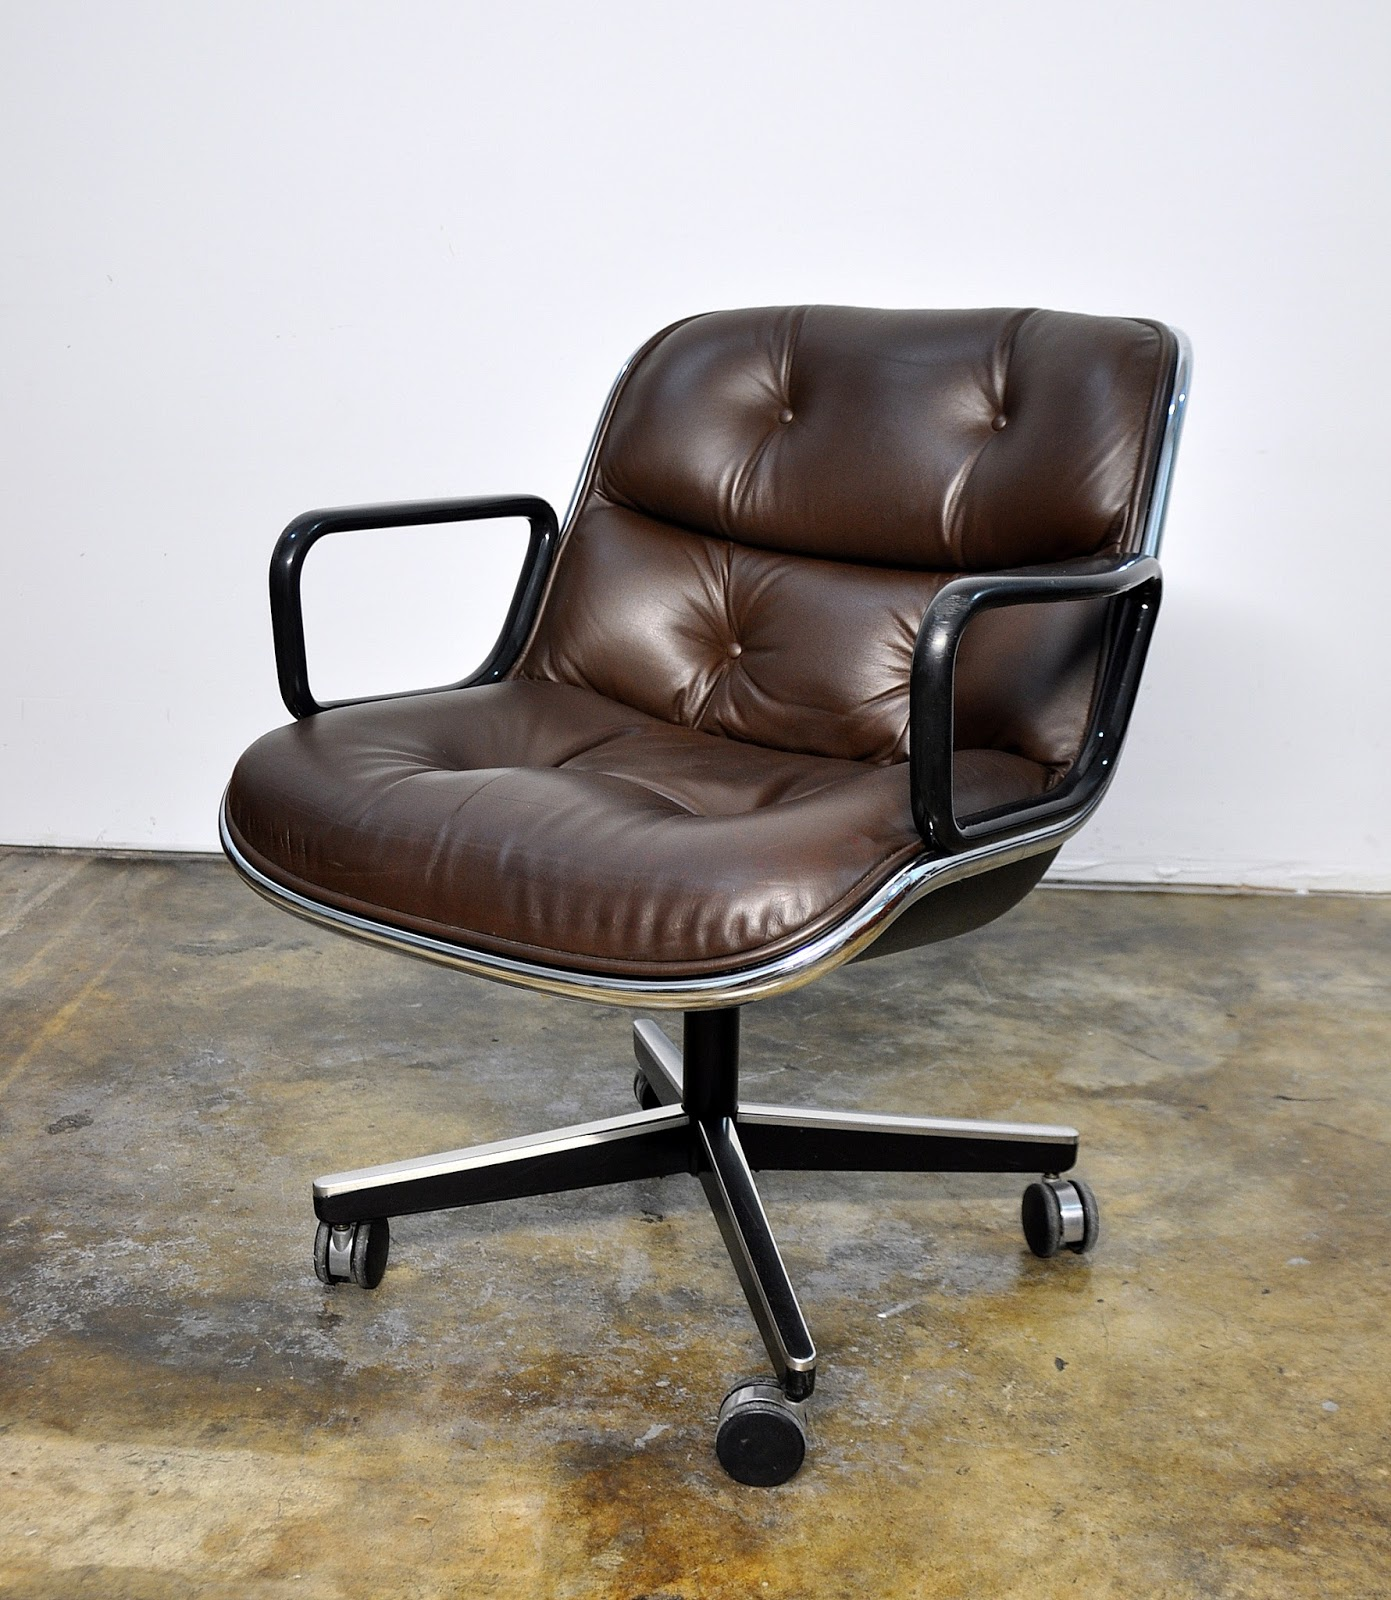 Pollock Executive Chair Replica Starck Ghost Select Modern Charles For Knoll Leather